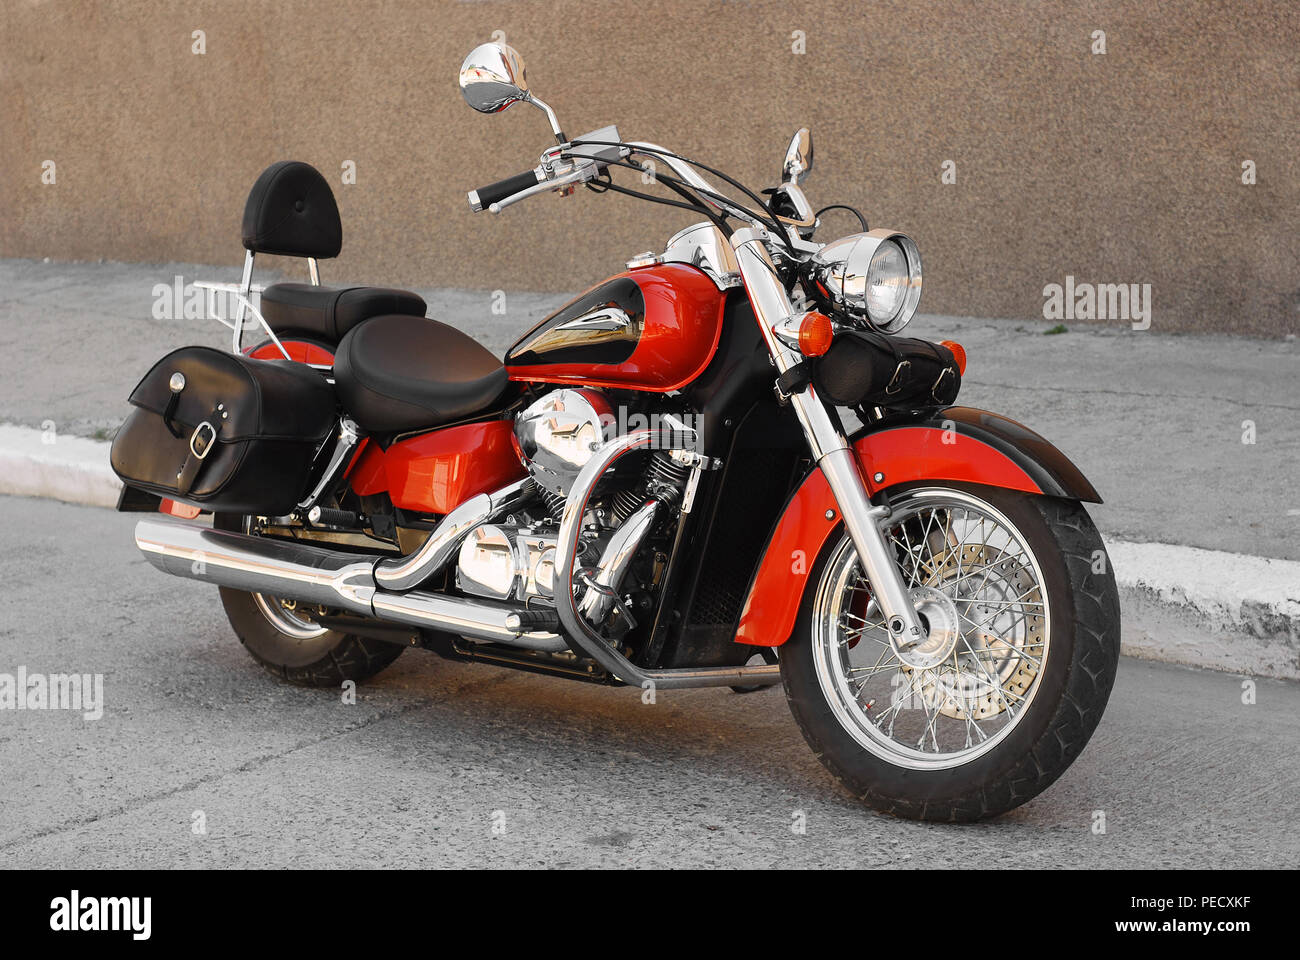 chopper motorcycle parked on the road - Stock Image